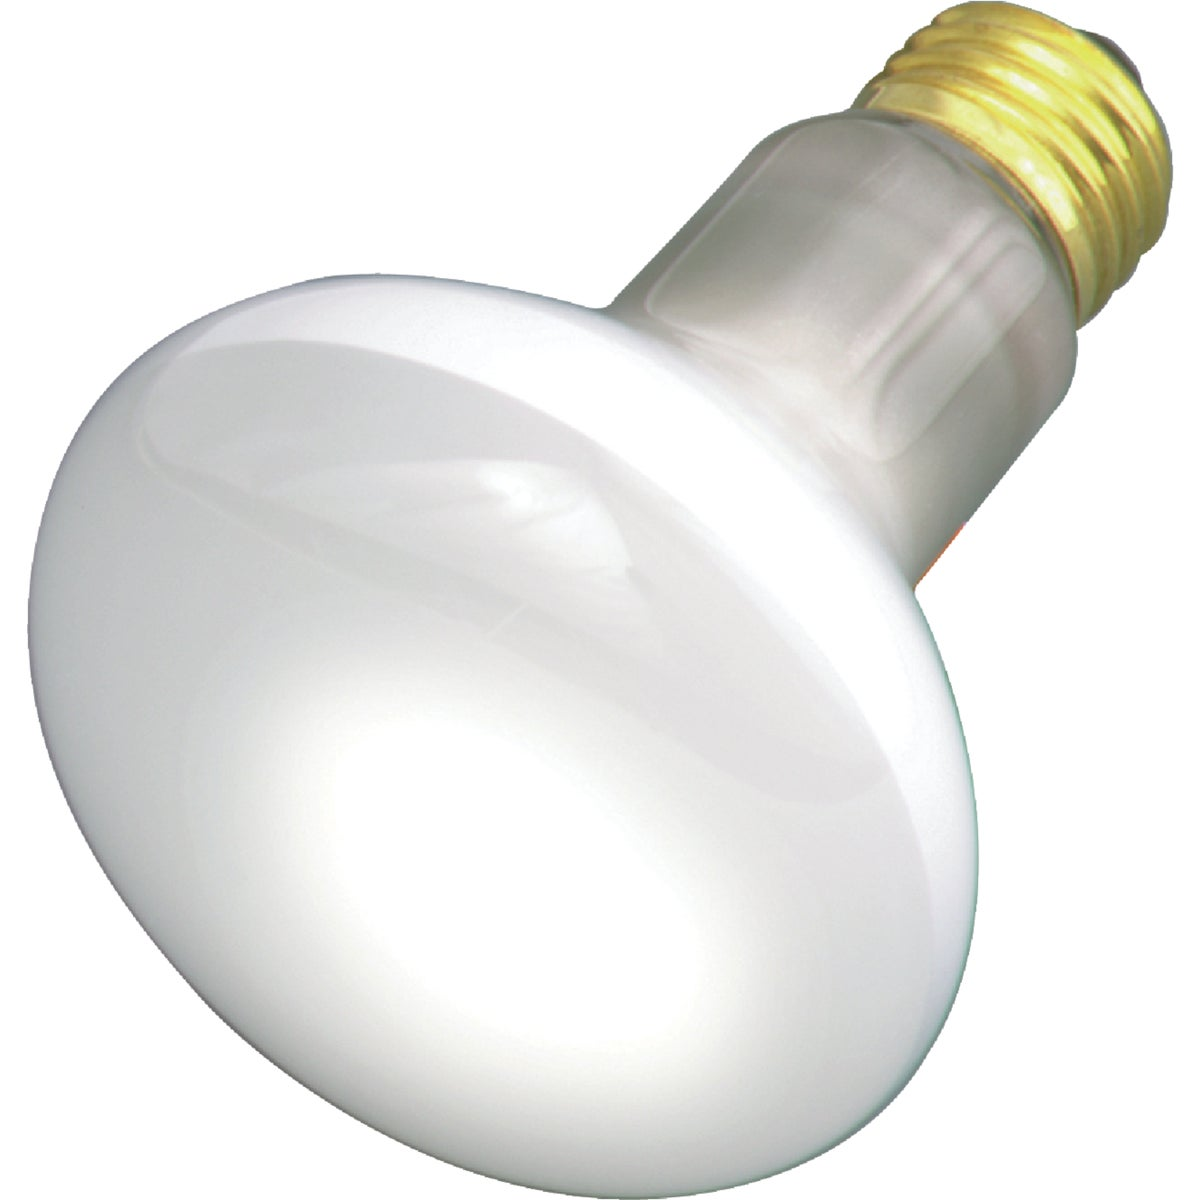 30W REFLECTOR BULB - 14891 by G E Lighting